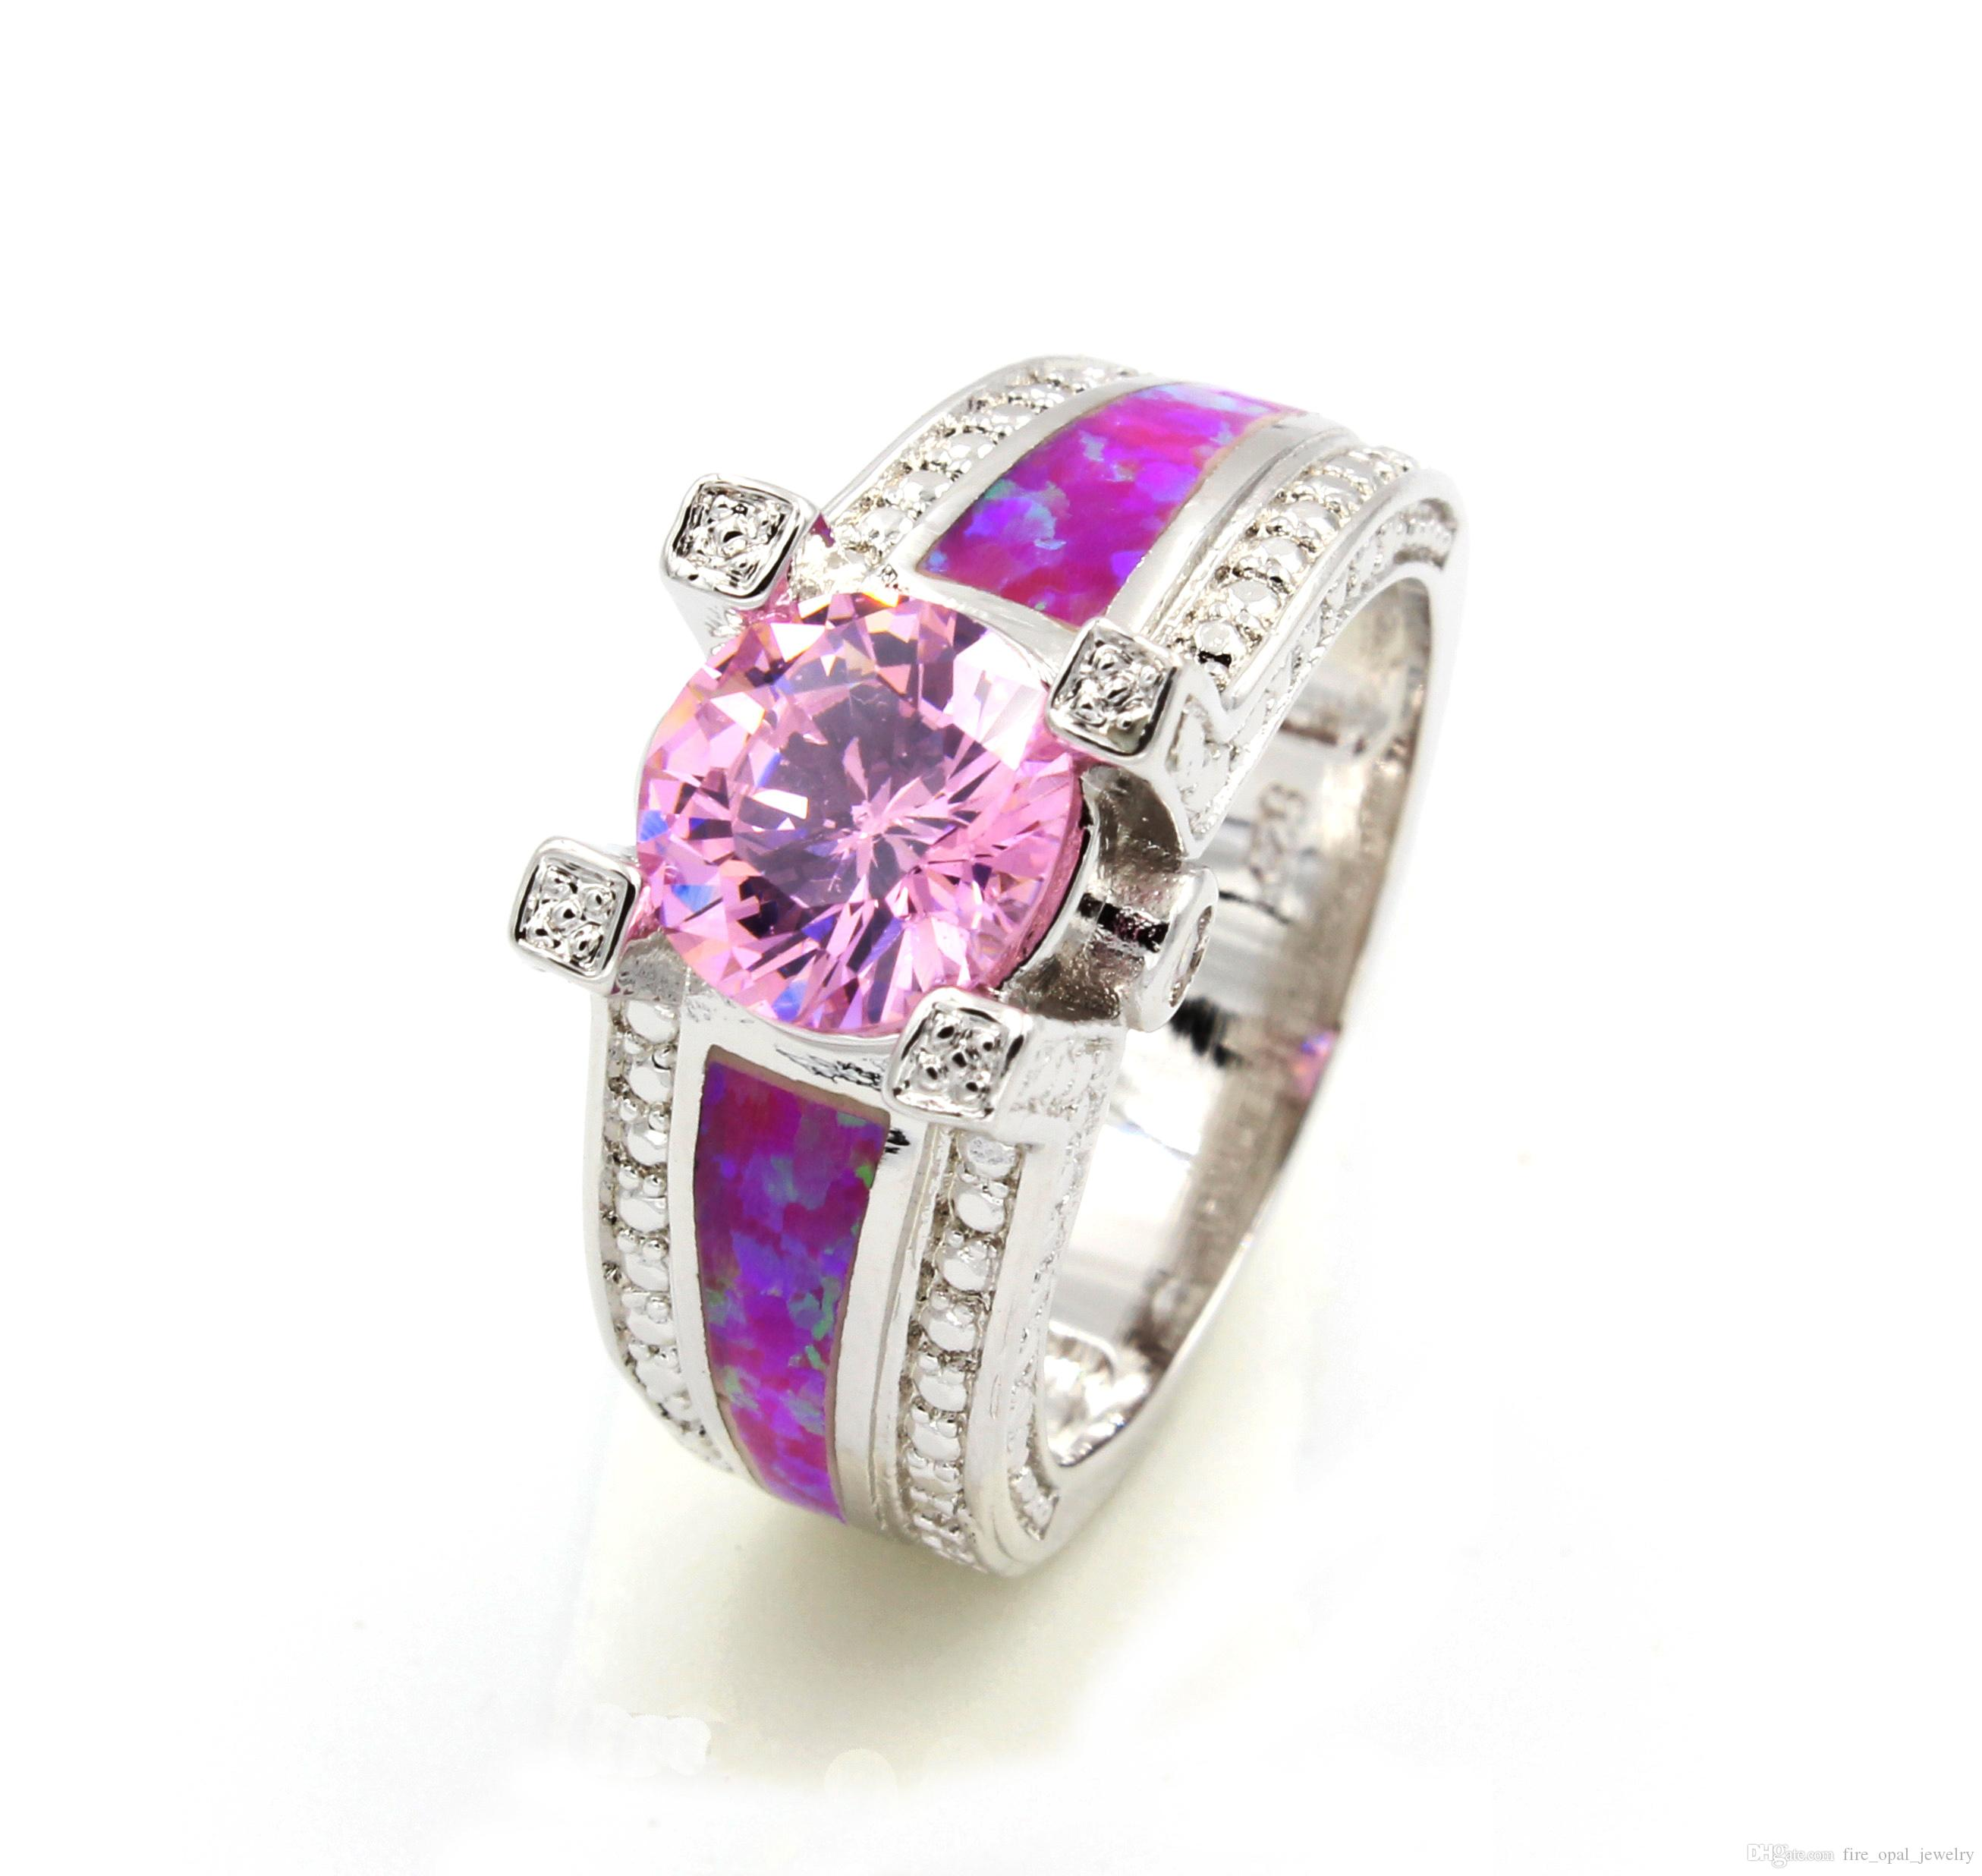 pink diamond inspirations rings ring of wedding ideas engagement inspirational beautiful